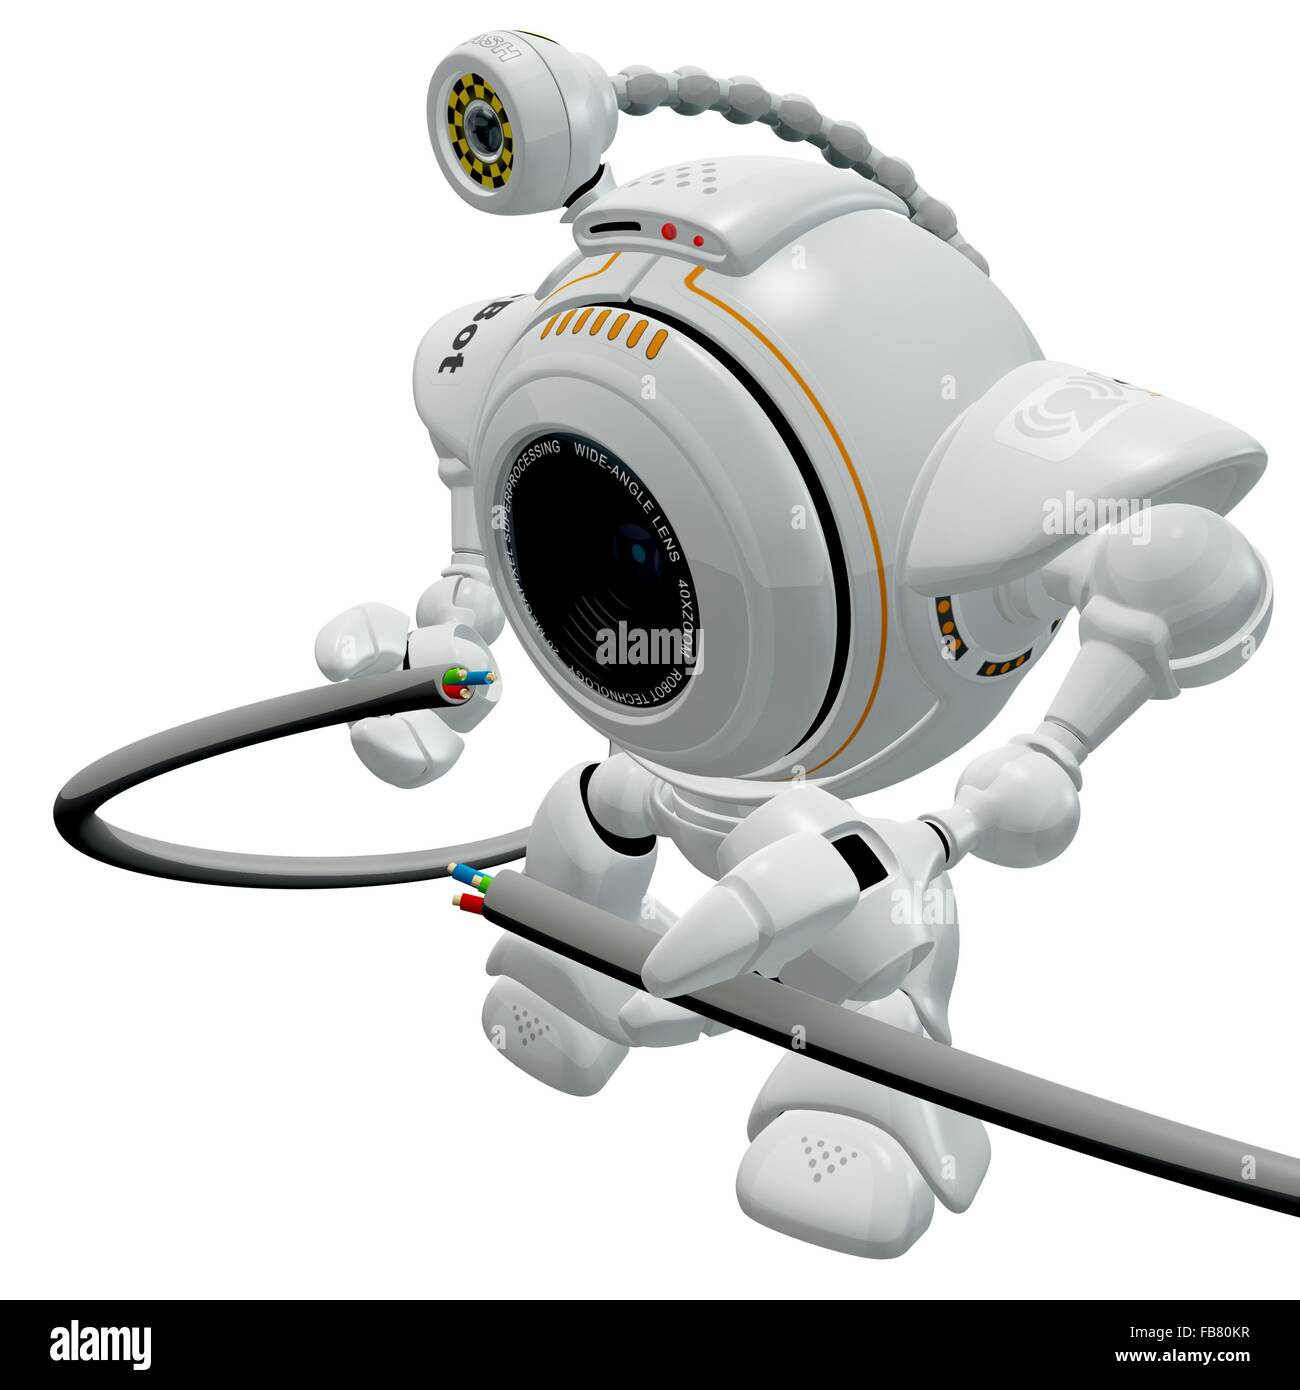 A robot web cam putting together (or taking apart) an electronics cable. meant to be a concept in trouble shooting - Stock Image